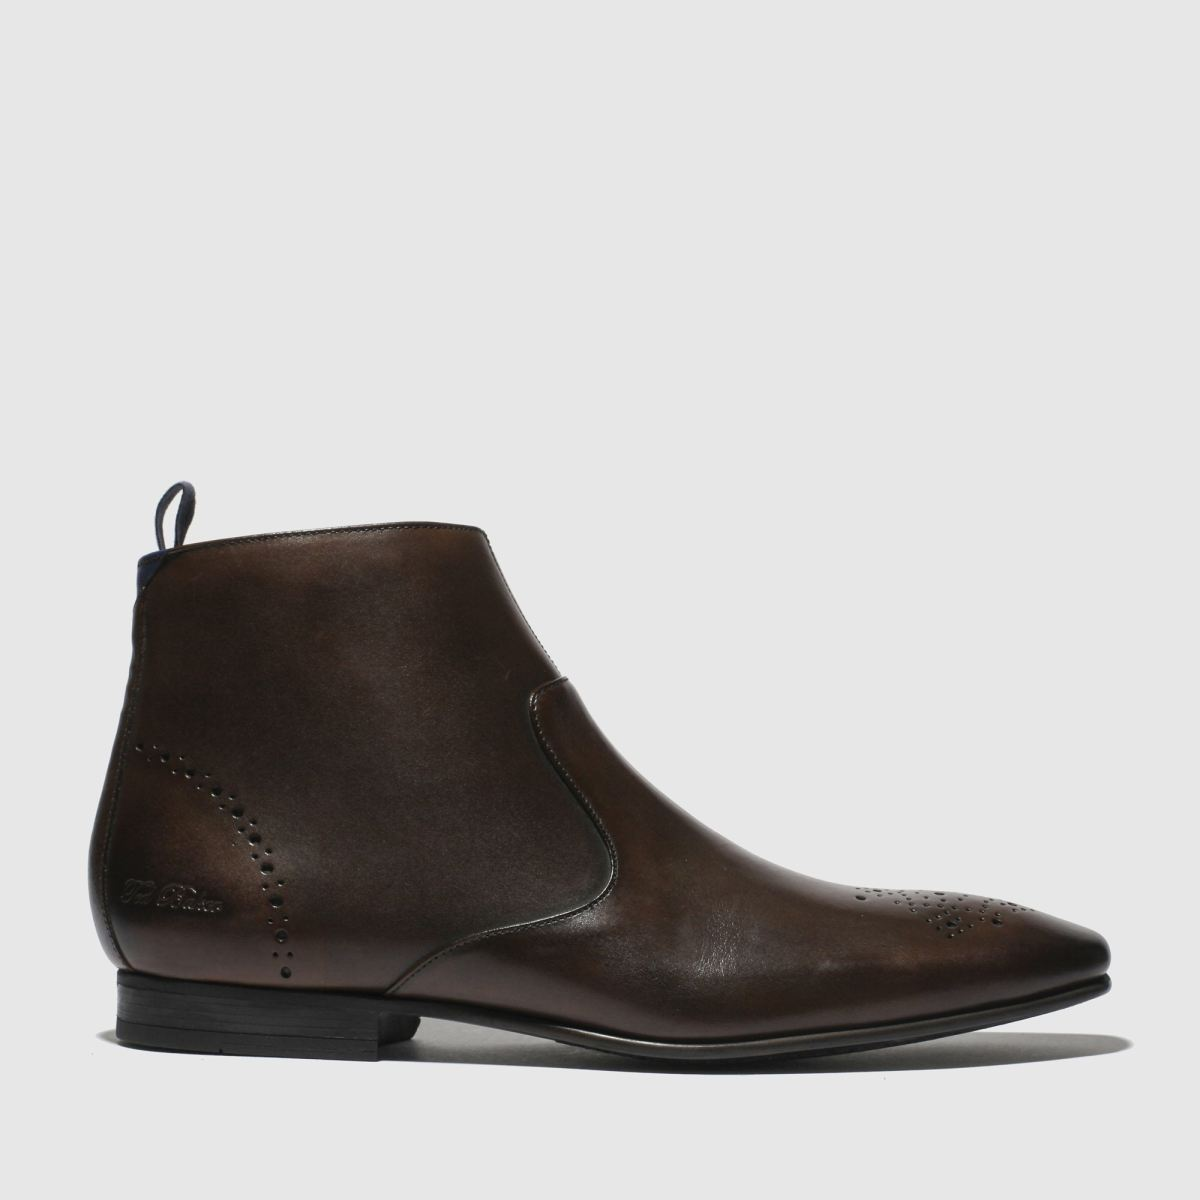 Ted Baker Brown Visthh Boots